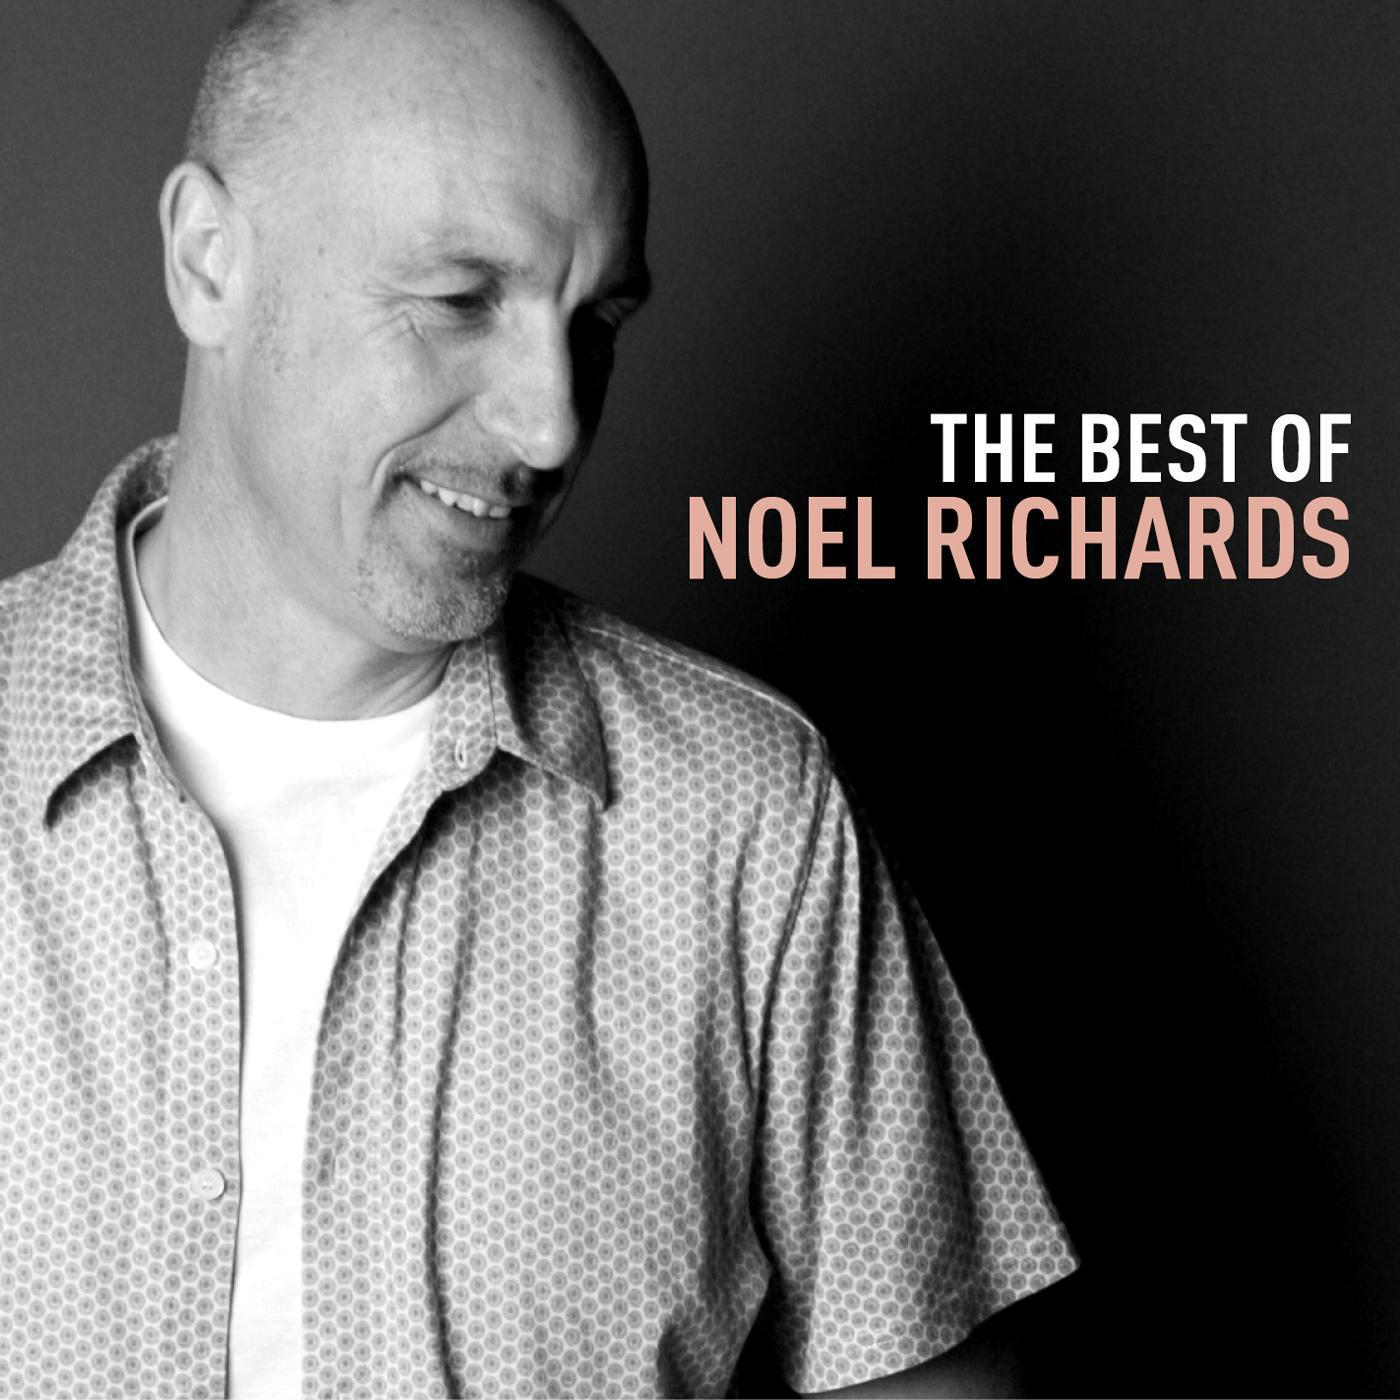 The Best Of Noel Richards